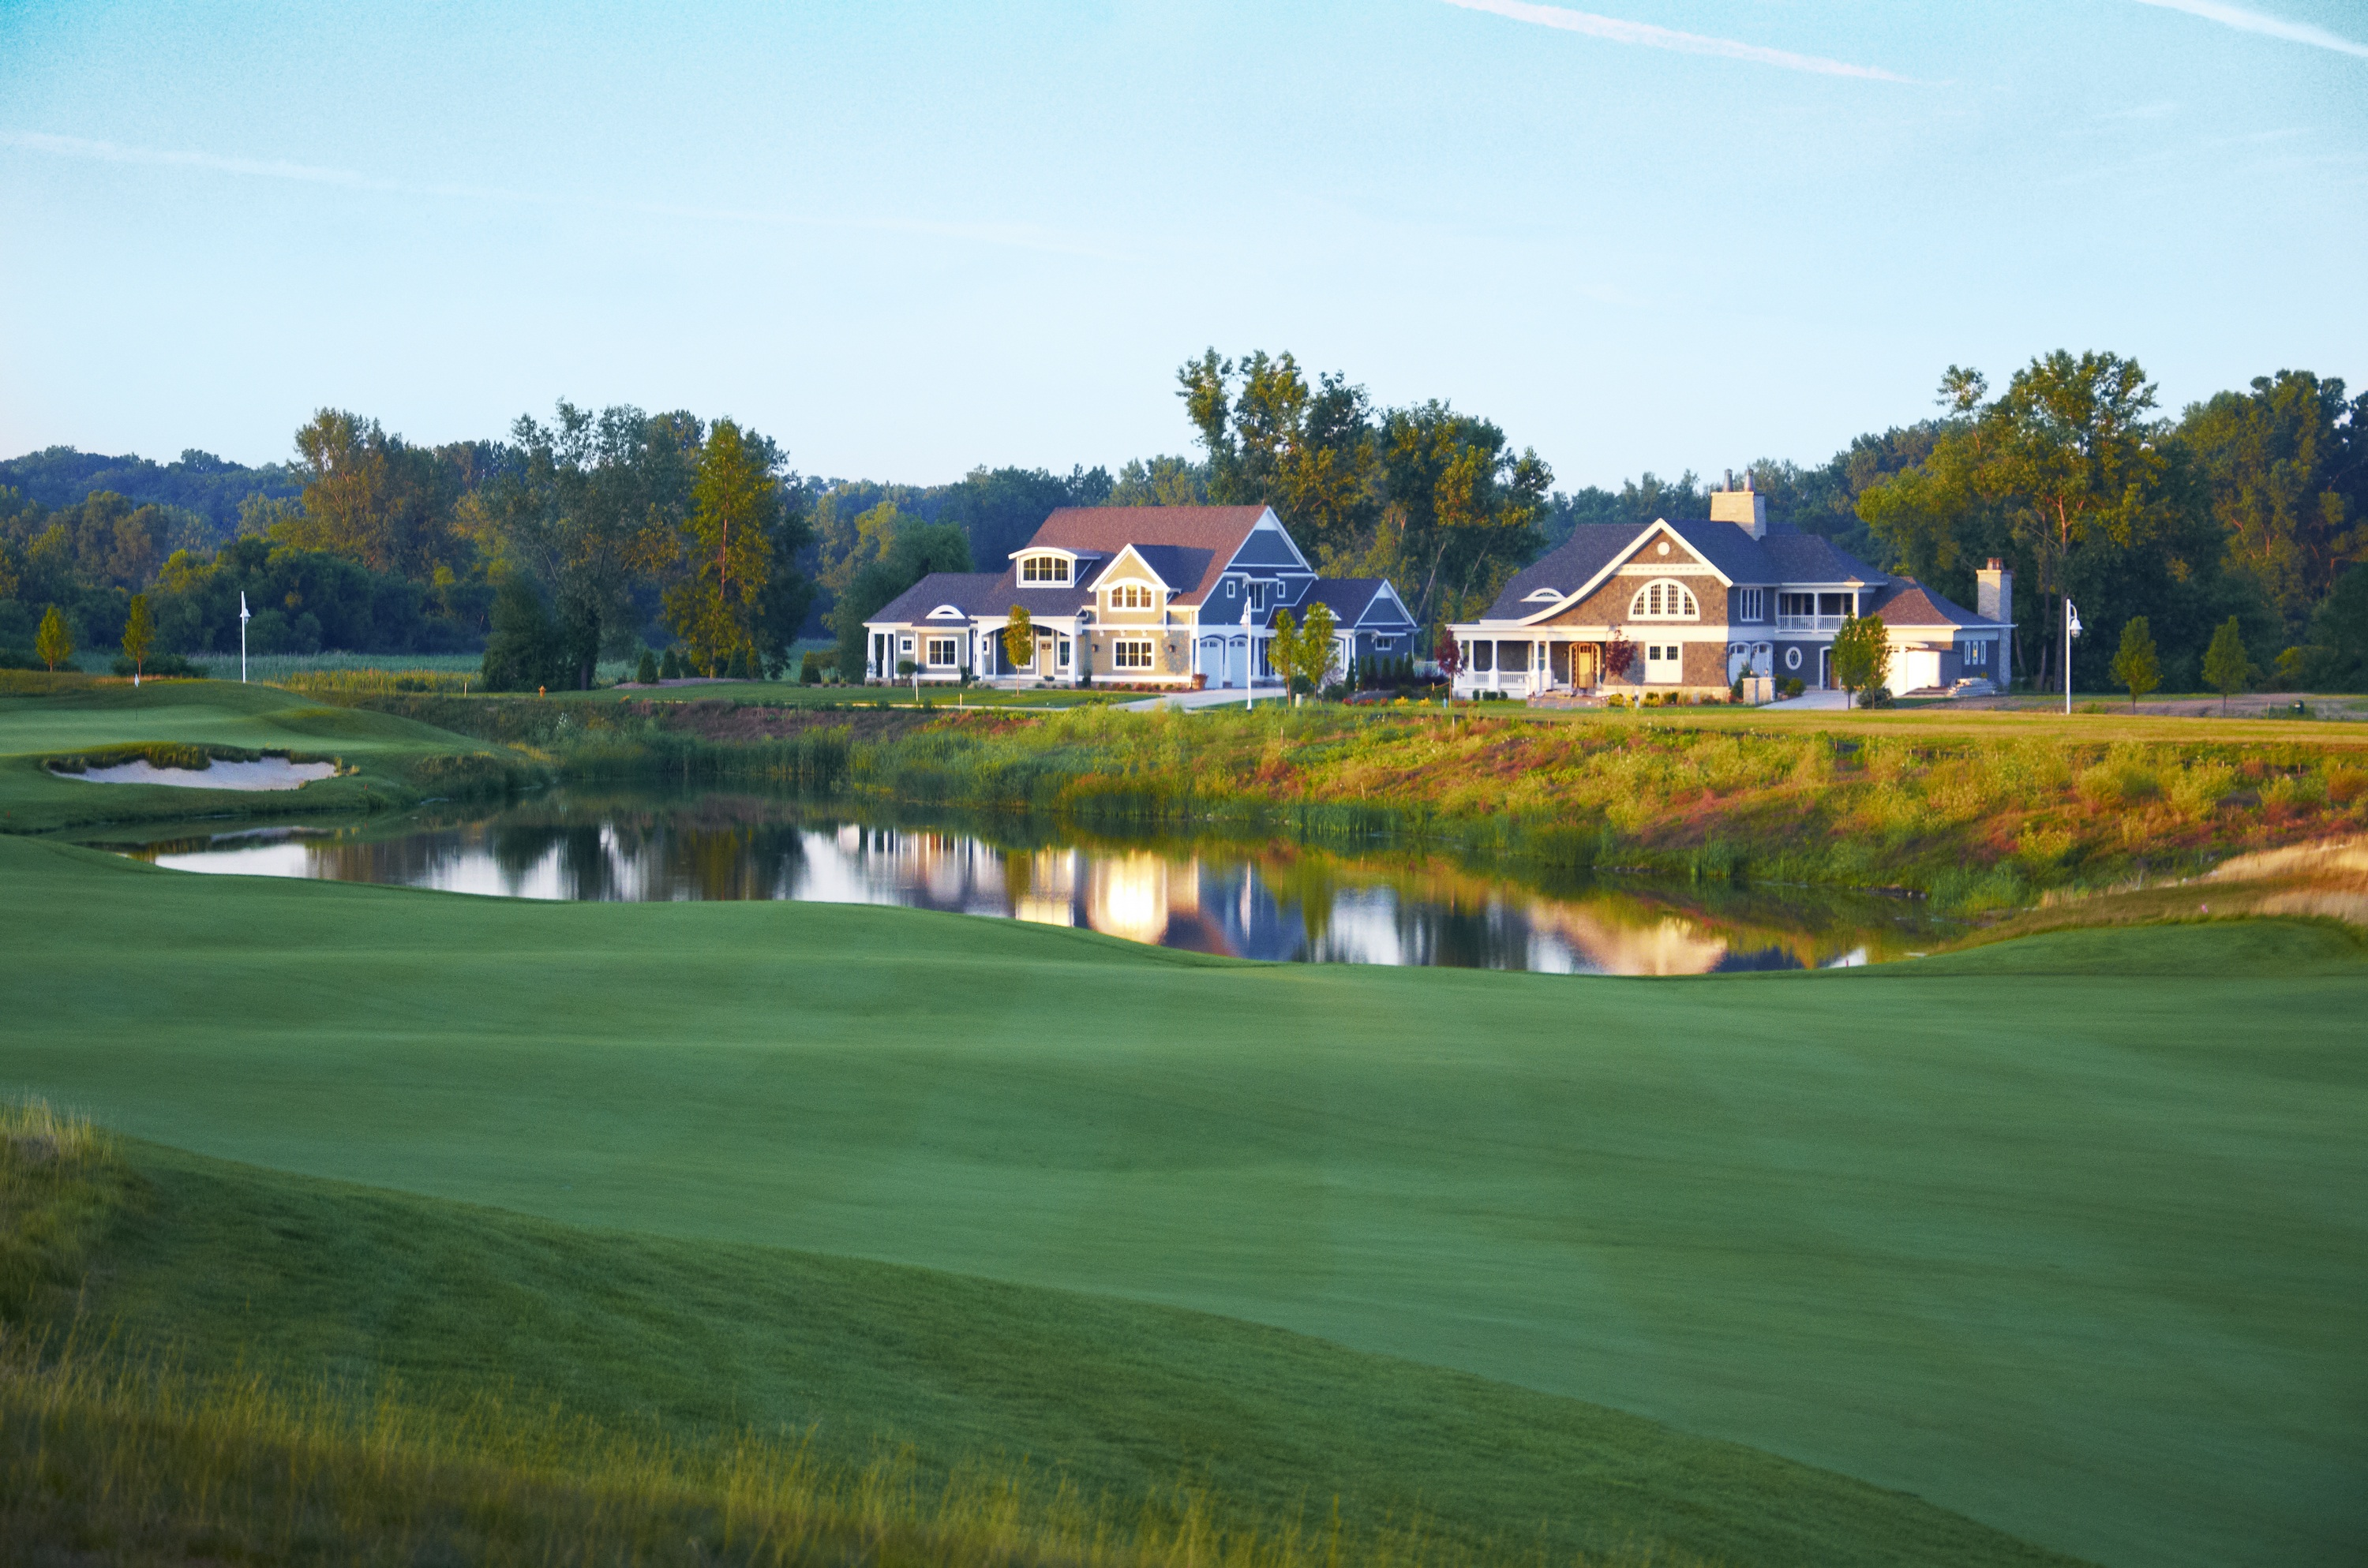 Harbor Shores' fantastic Fairway Villas offer homebuyers 5 years of free golf, VIP access to the 2012 Senior PGA Championship, and the ultimate in golf lifestyle. The development recently donated homesites to Habitat For Humanity.